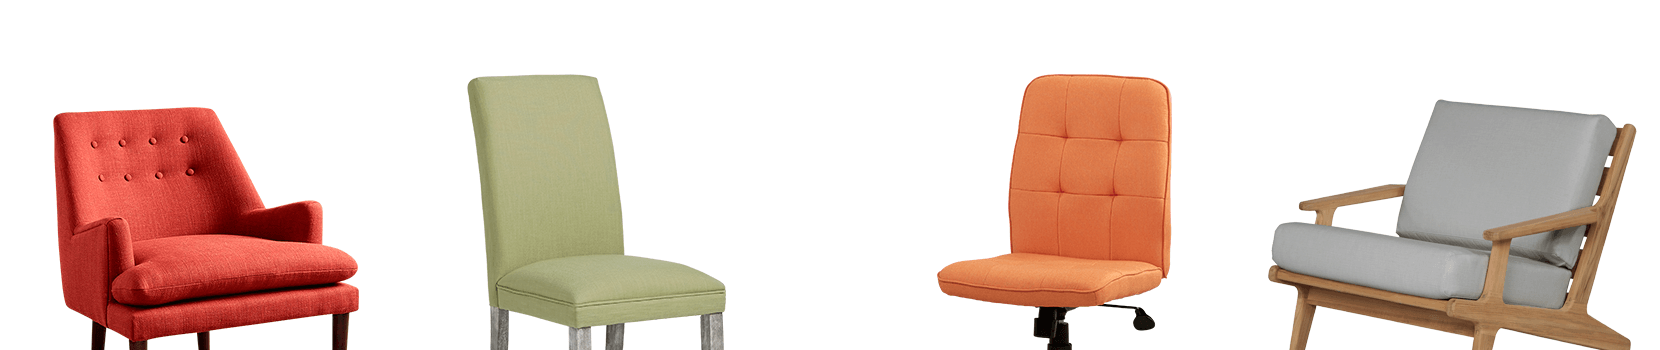 Browse our selection of chairs